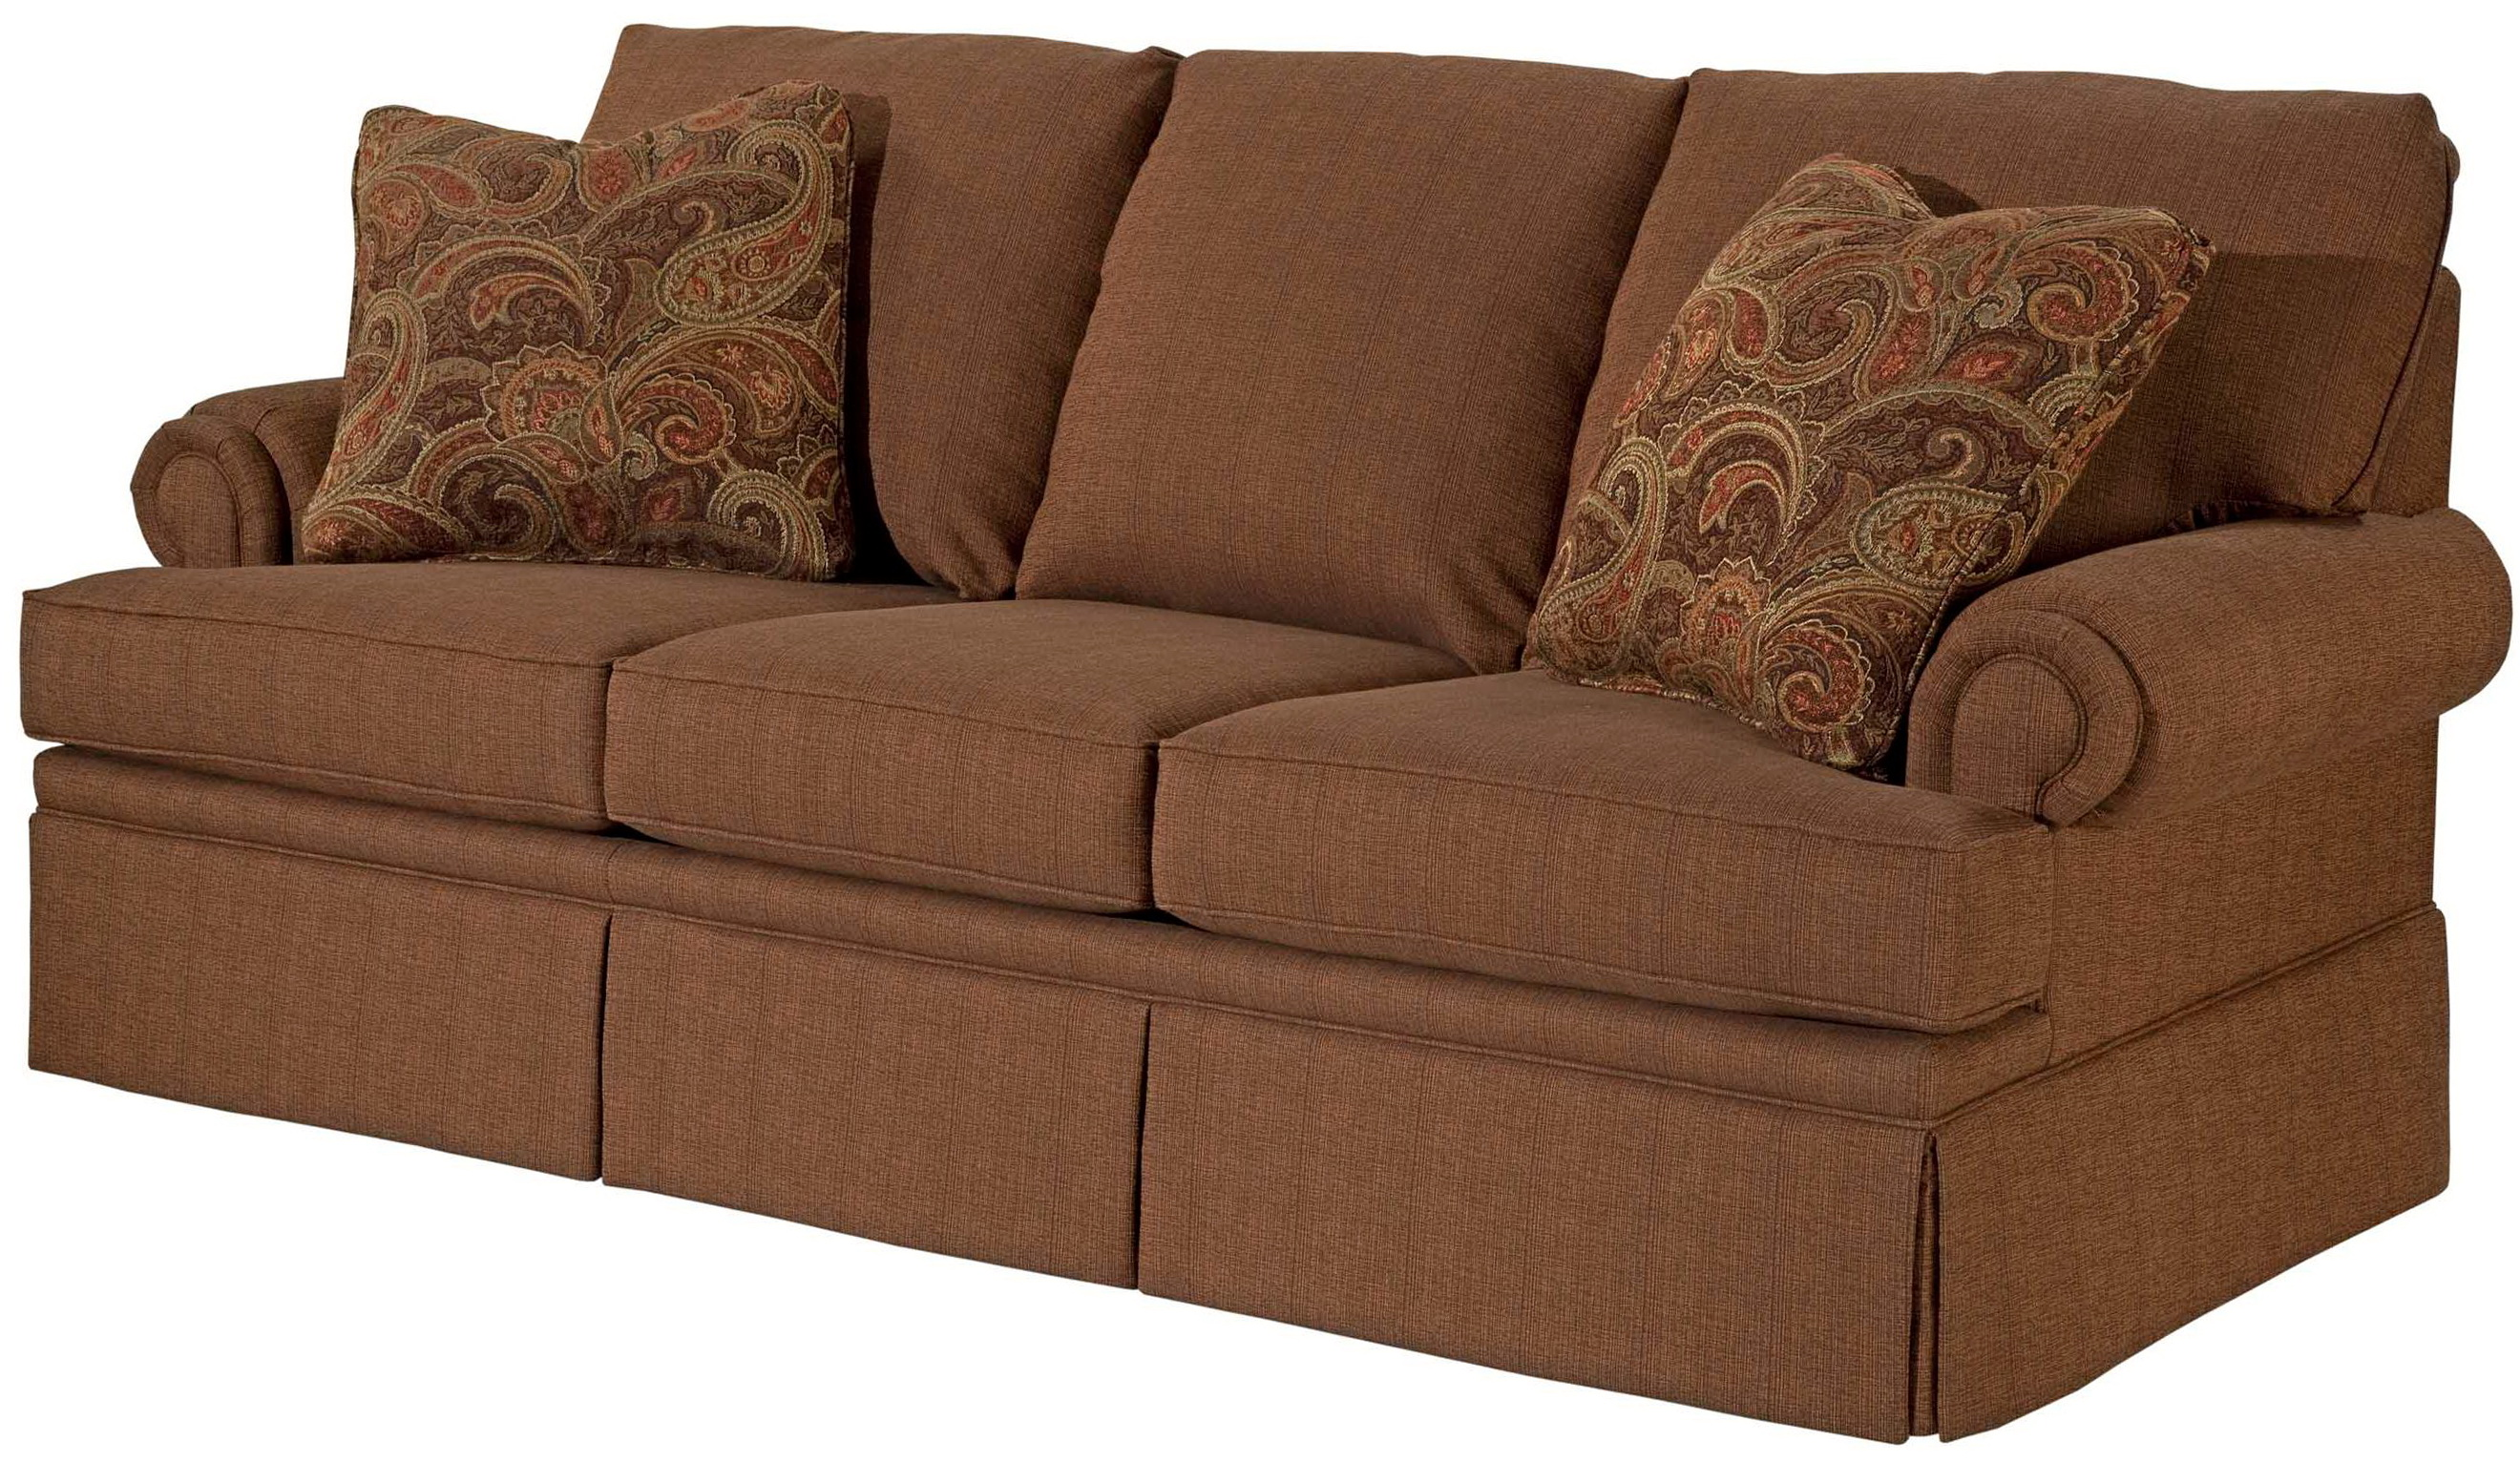 Couch Cushion Support Panels